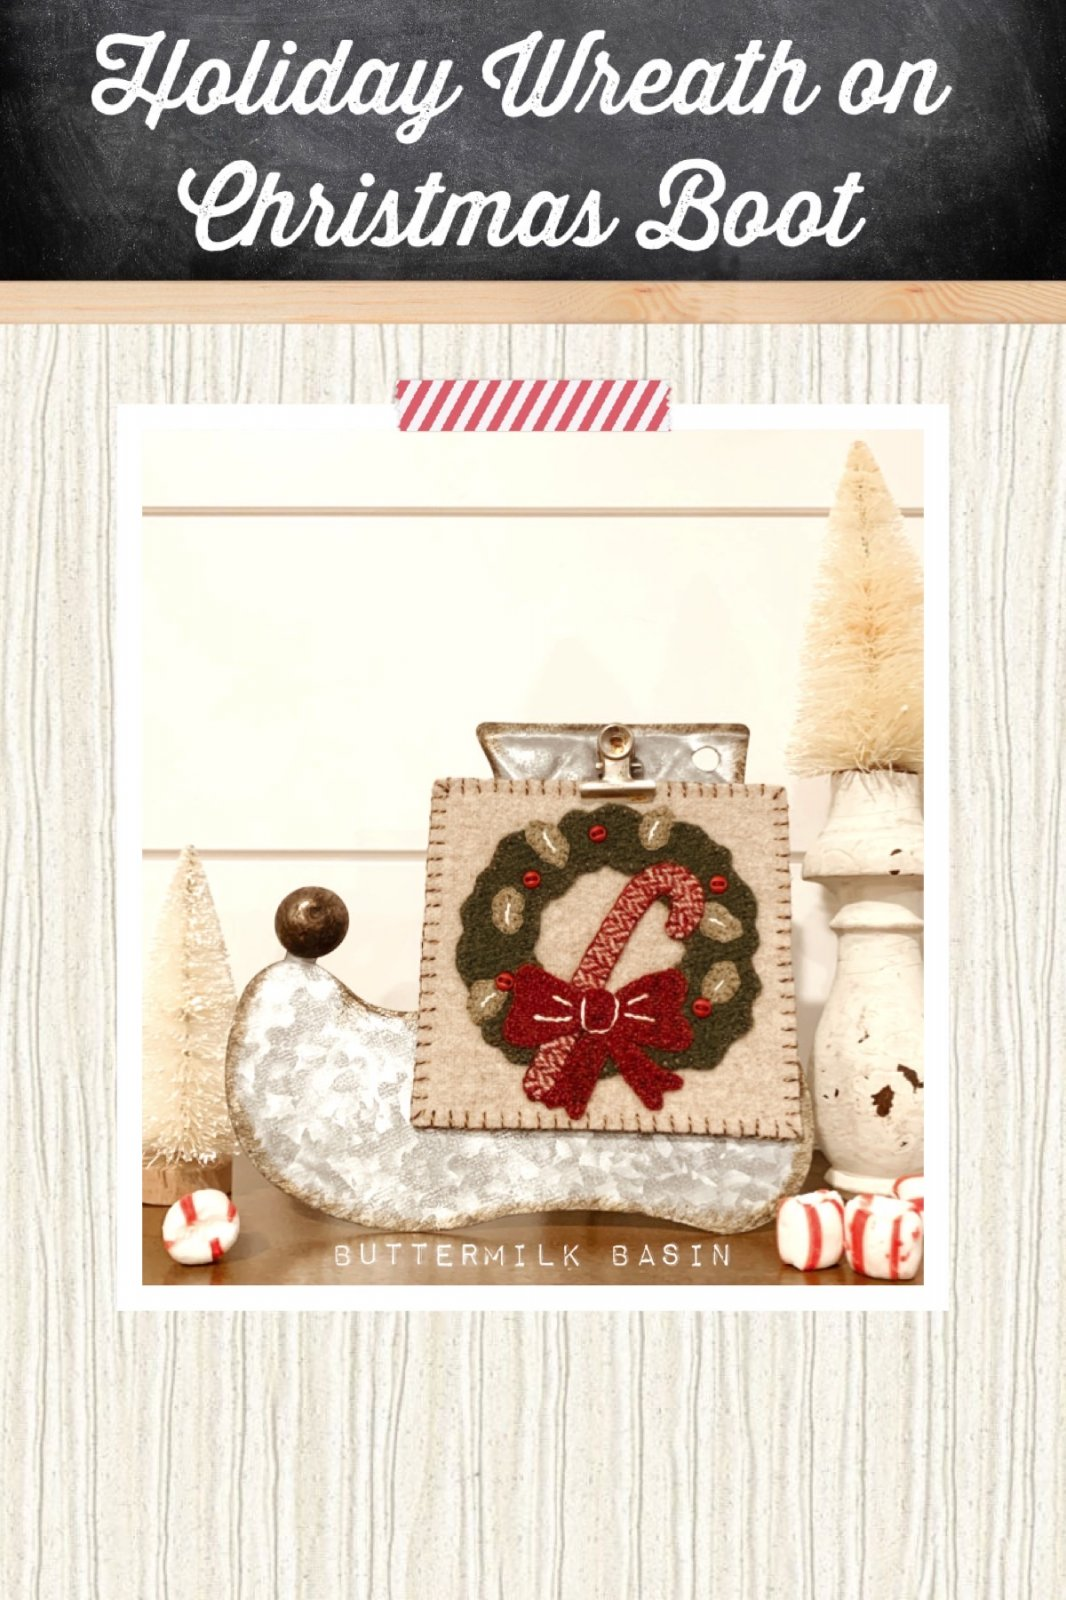 Holiday Wreath on Christmas Boot *Kit, Pattern & Metal Stand